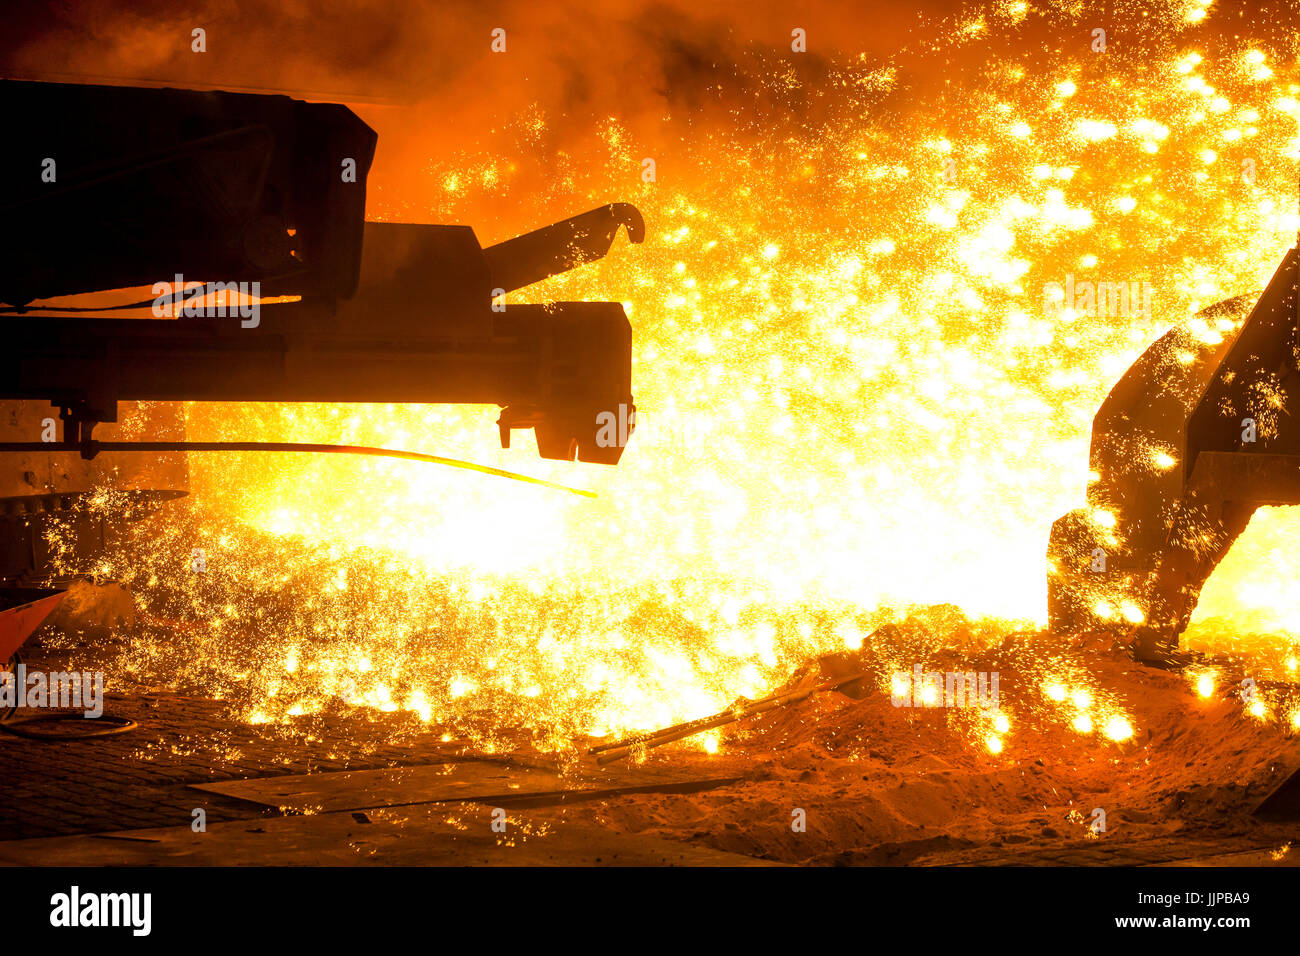 ThyssenKrupp steelwork in Duisburg, Ruhr area, North Rhine-Westphalia, Germany, Europe. Tapping the blast furnace - Stock Image